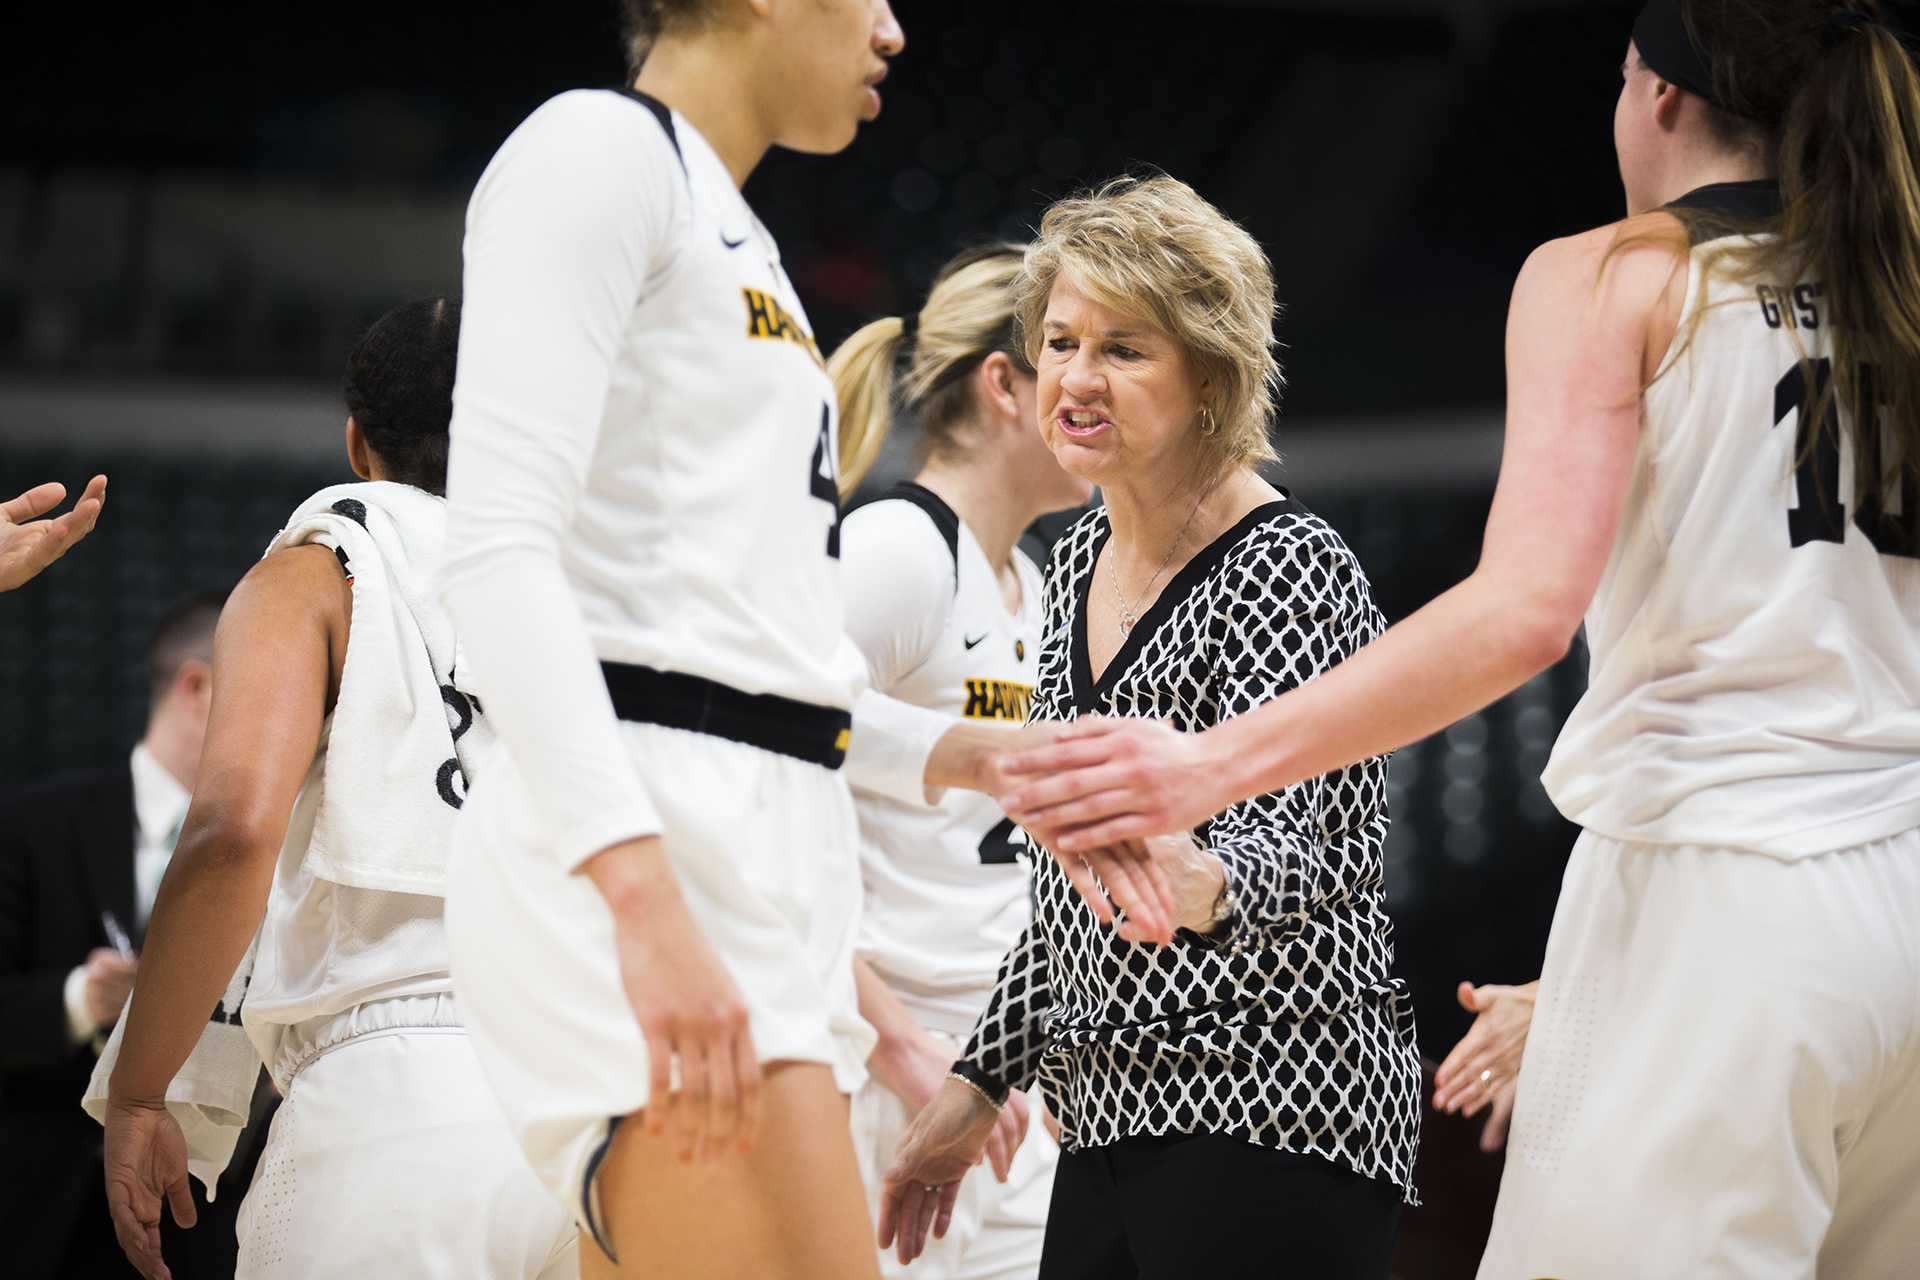 Iowa women's basketball pushed by Bluder's passion